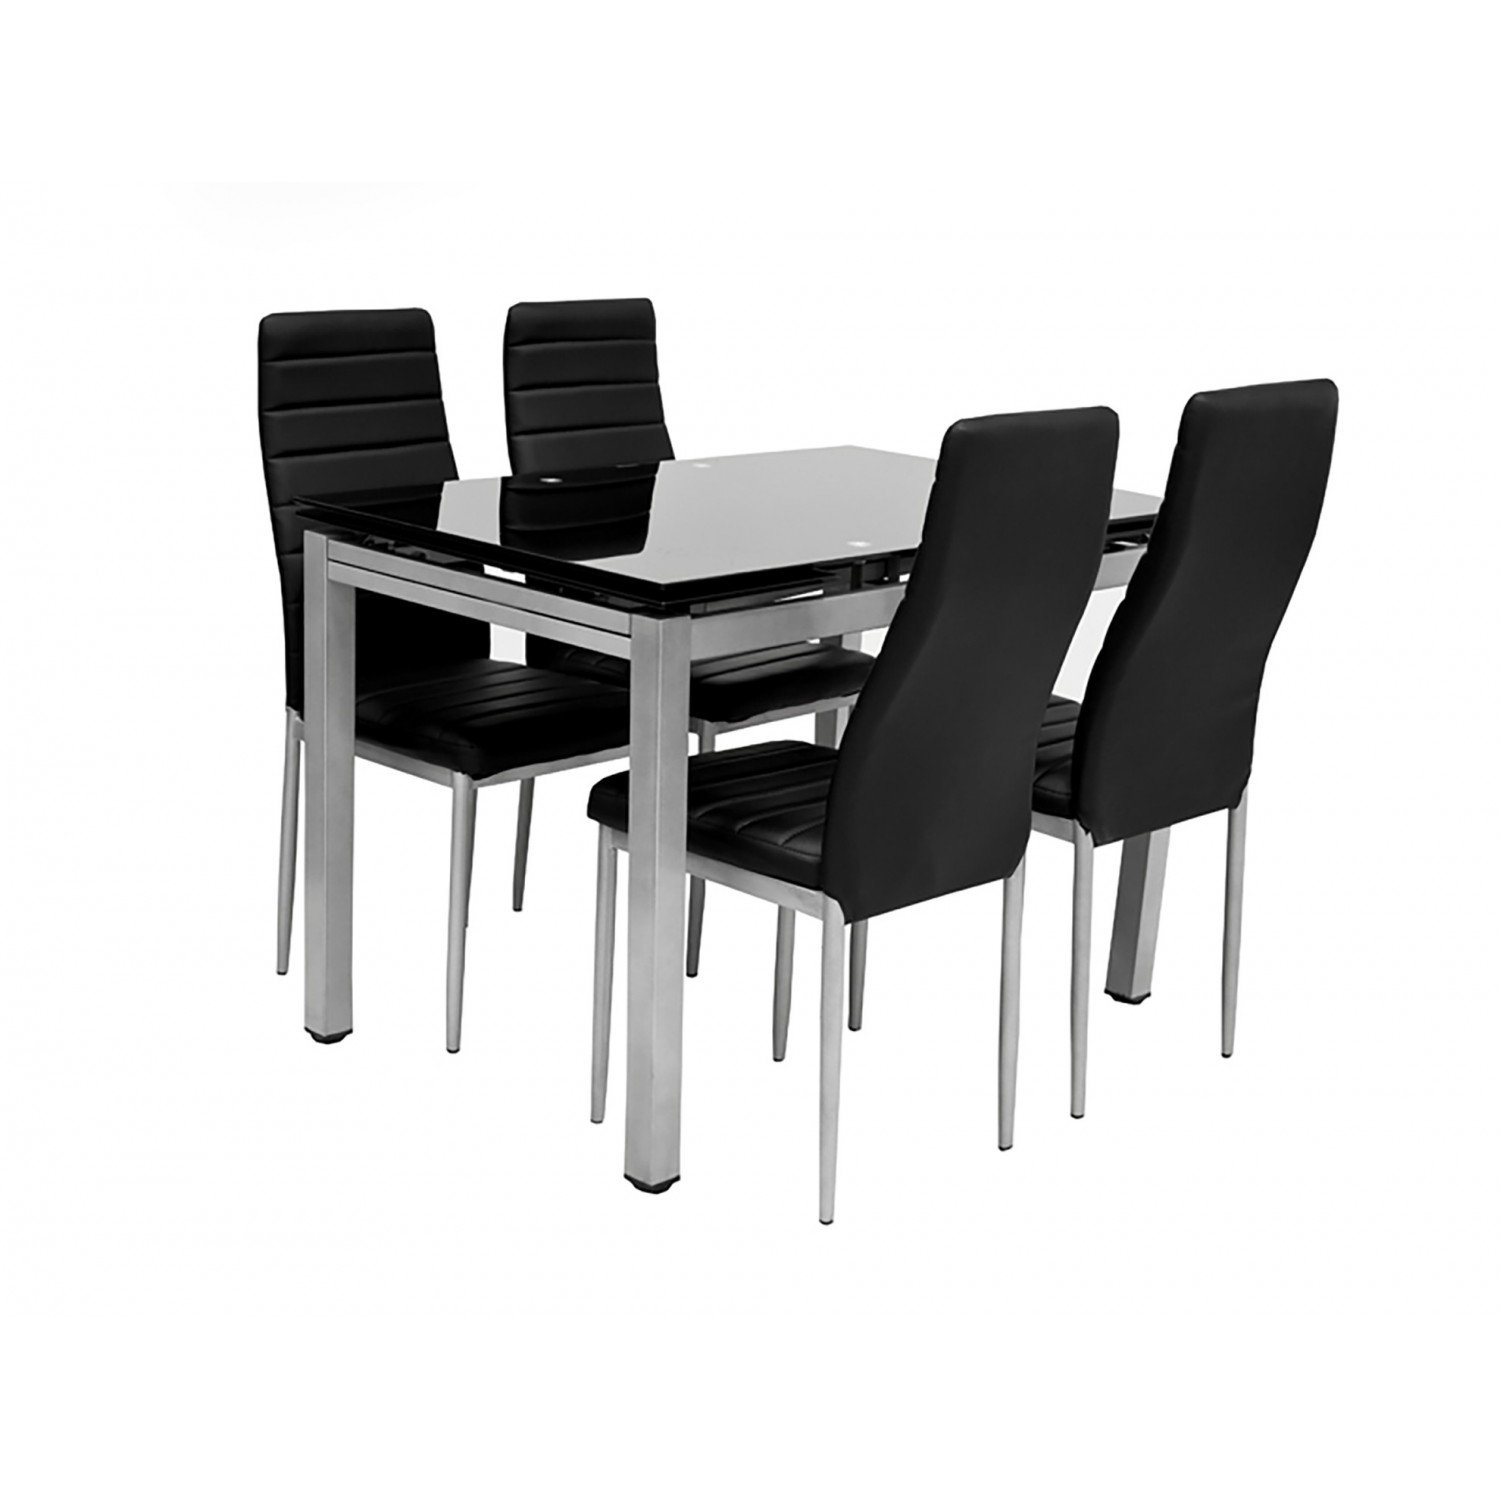 Awesome table et chaises de cuisine noire contemporary for Table et chaise noir et blanc